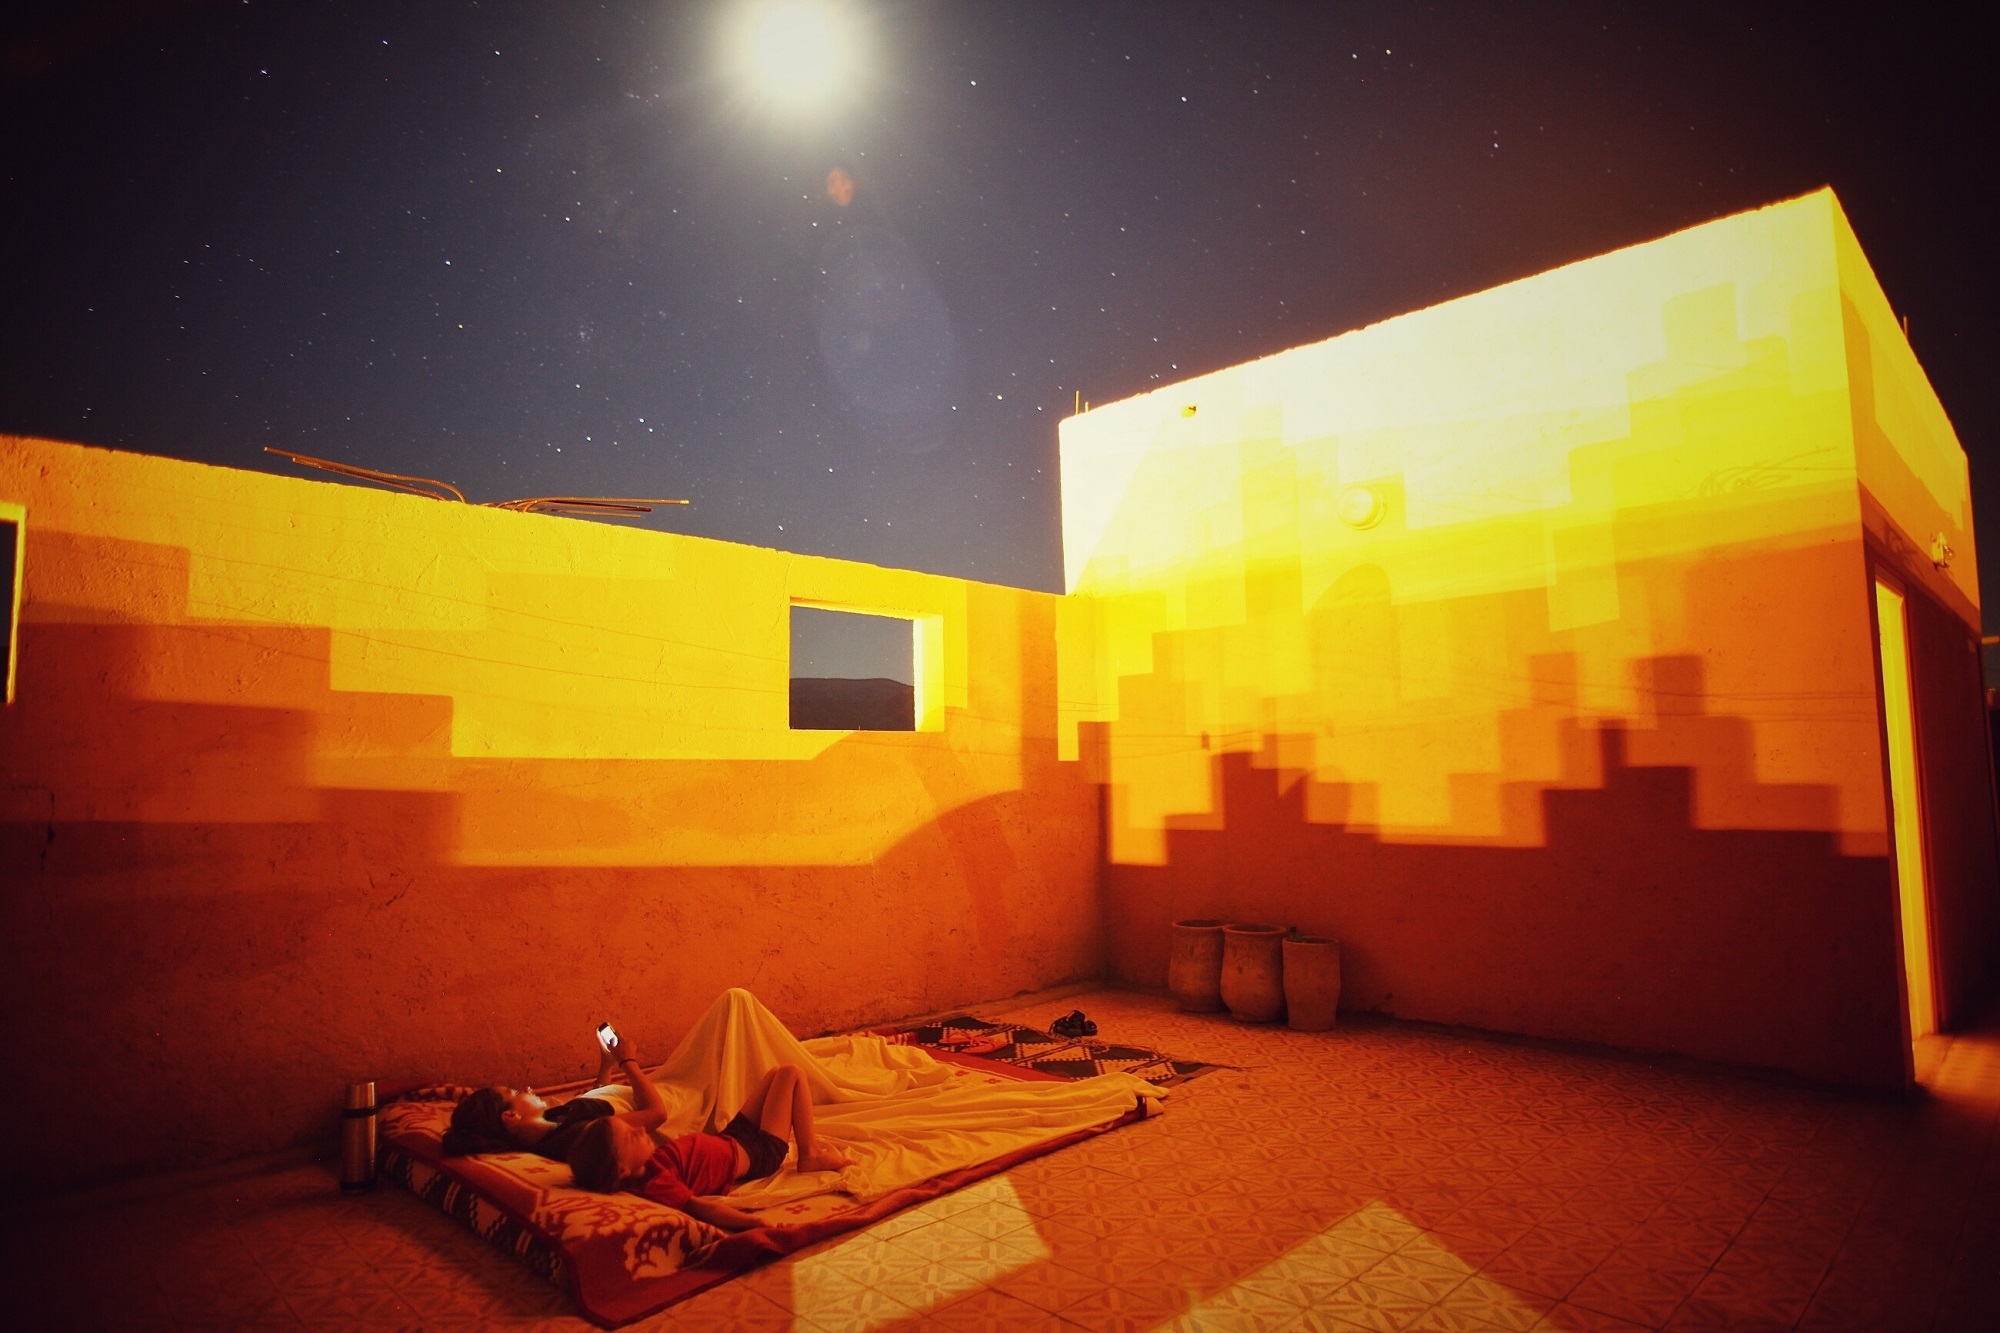 Sleeping on a hotel rooftop, Morocco.